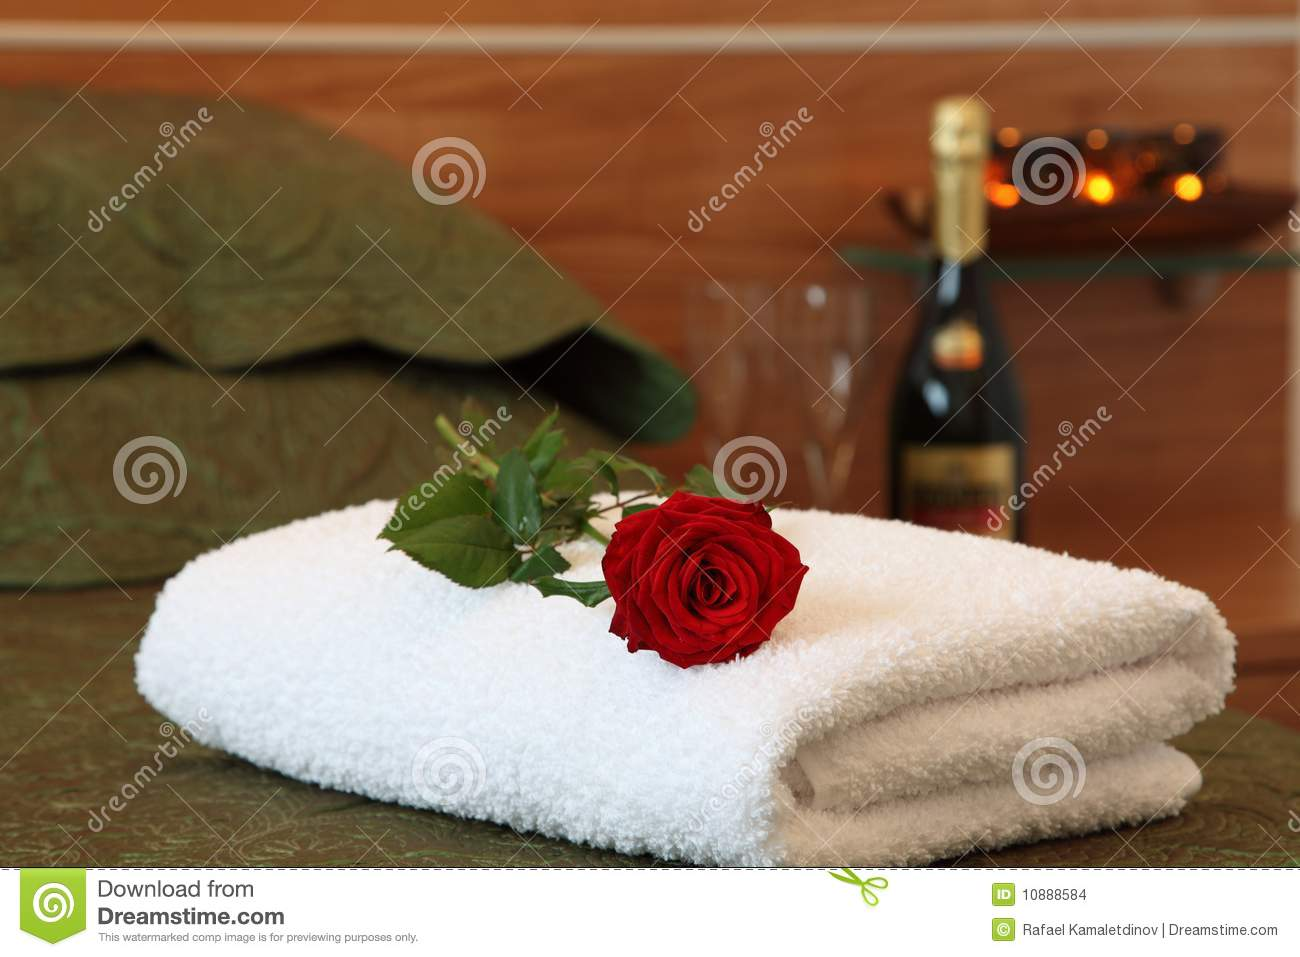 Modern hotel room interior stock photo image 18197840 - Hotel Room With Rose On Bed Stock Images